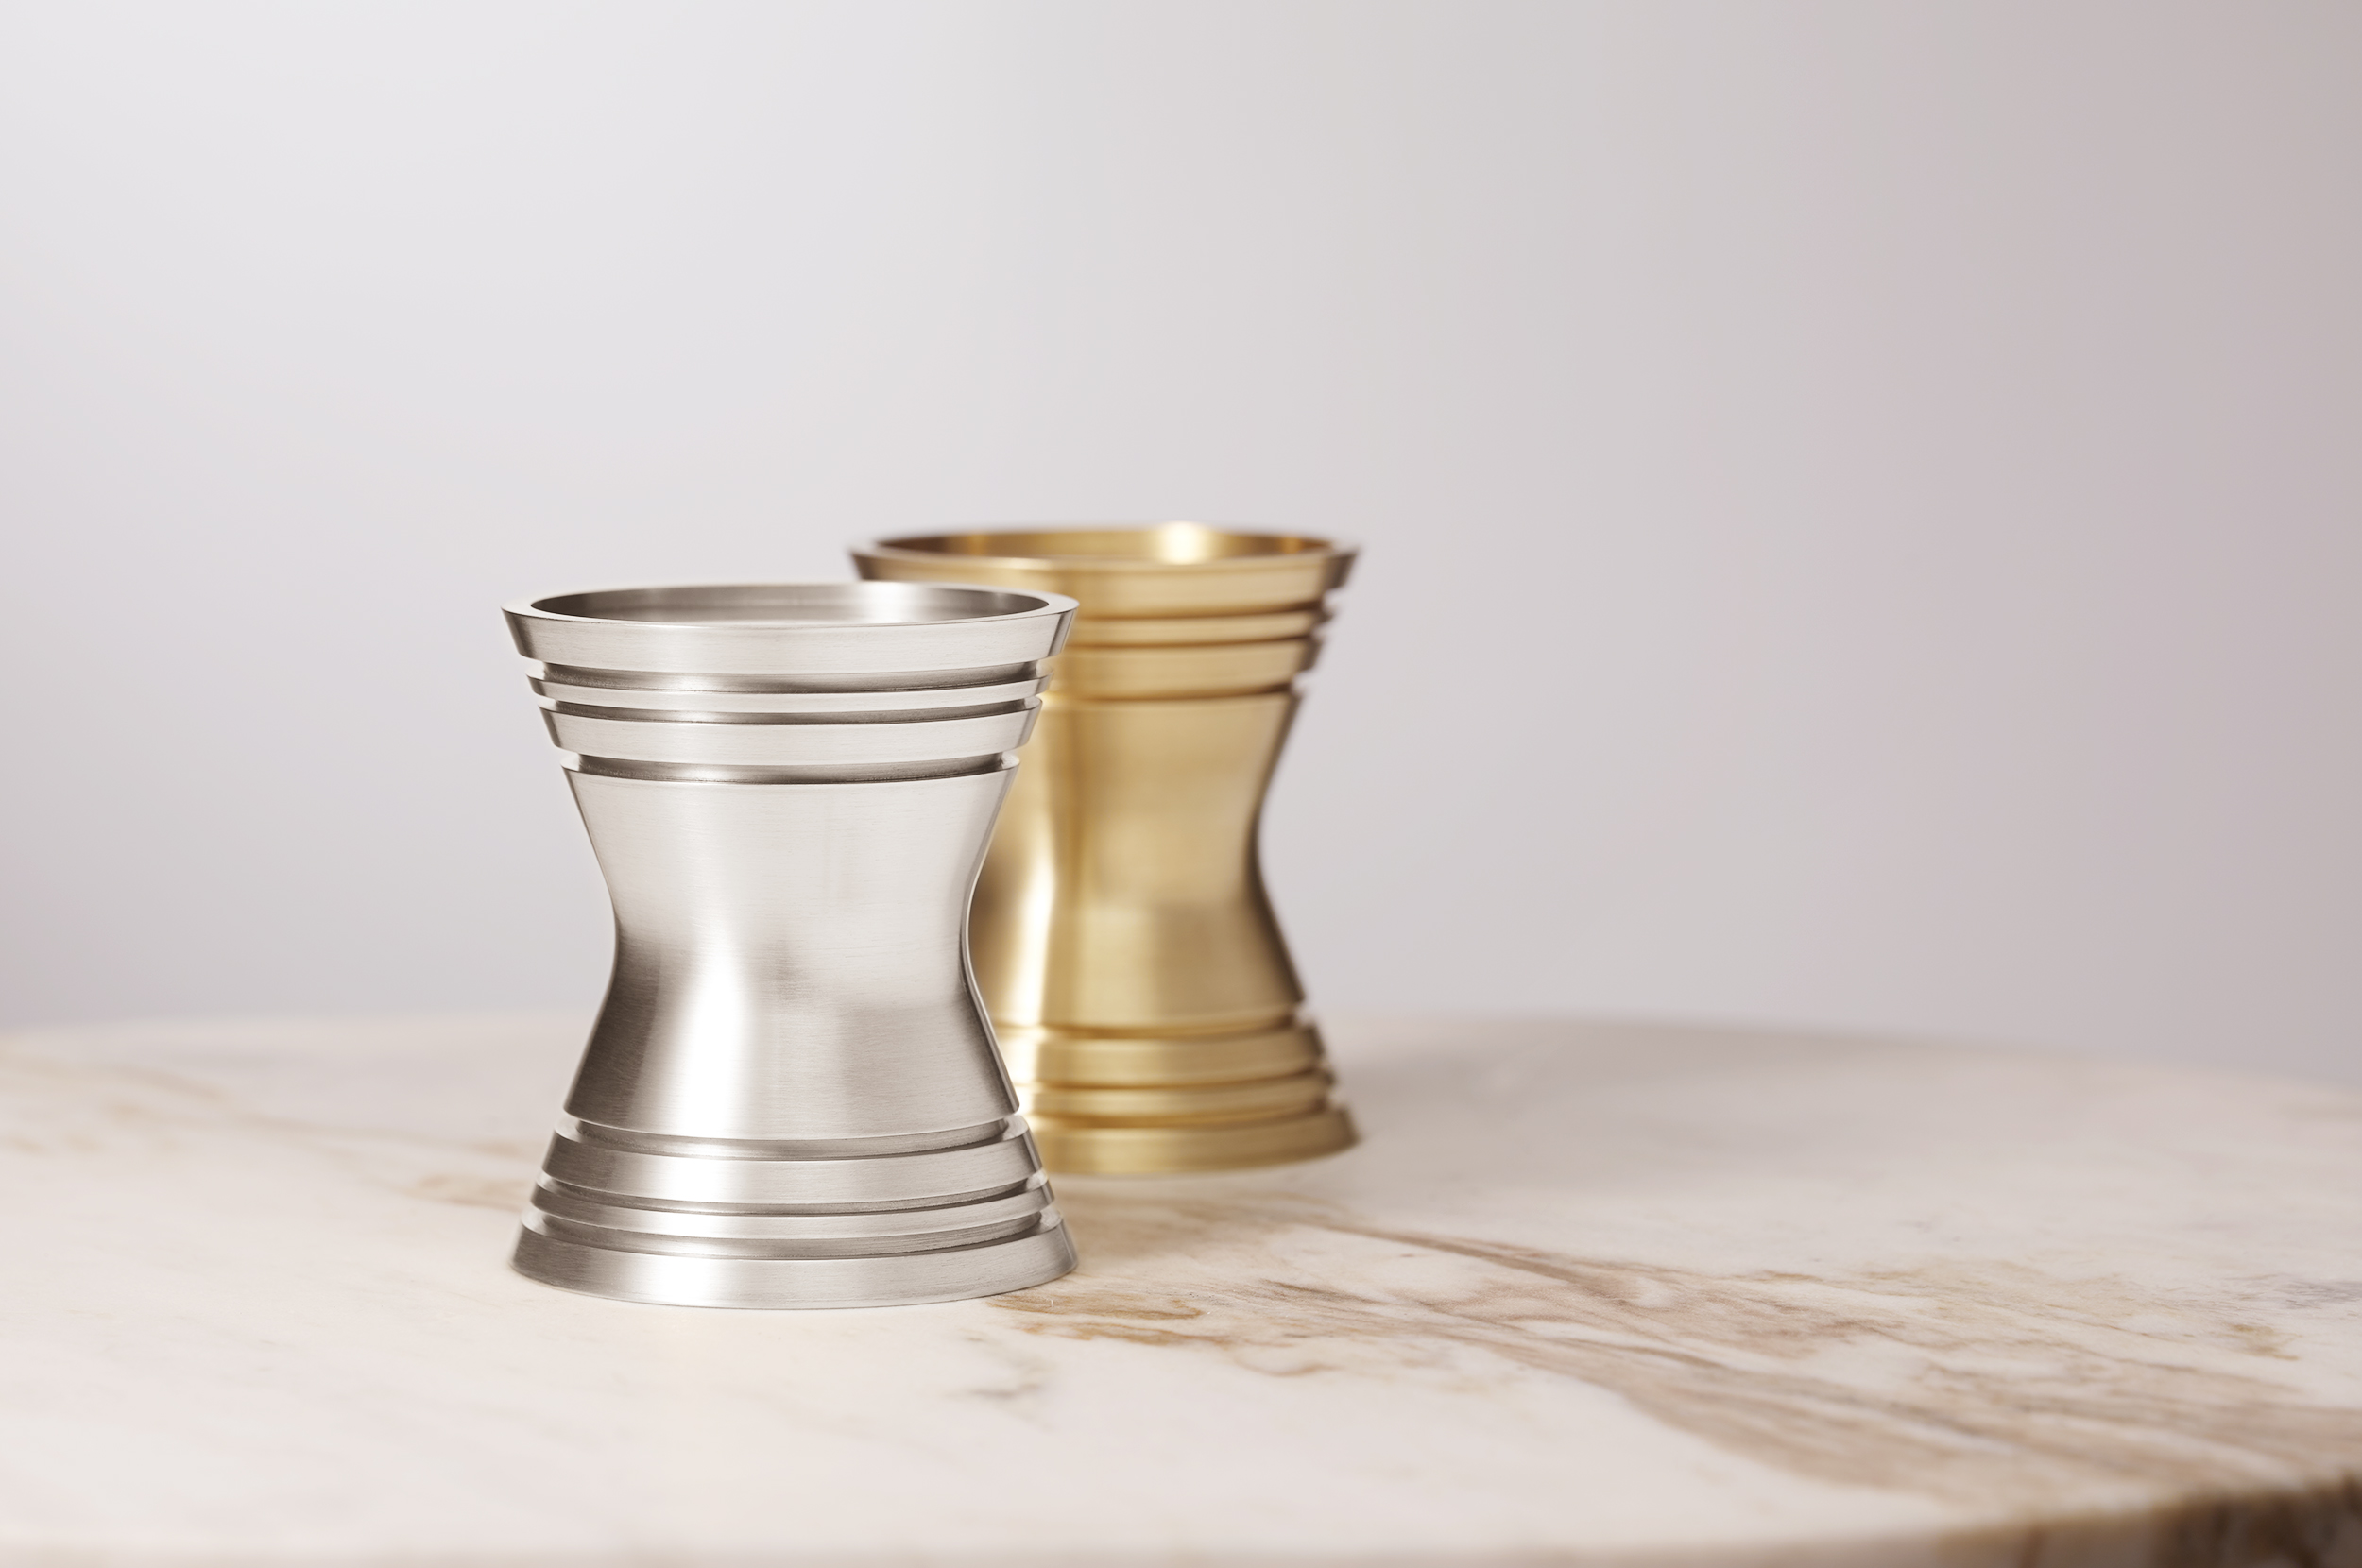 _170106 Post and Gleam table top Candle Holders Short Pair COMP R1 FL LR.jpg